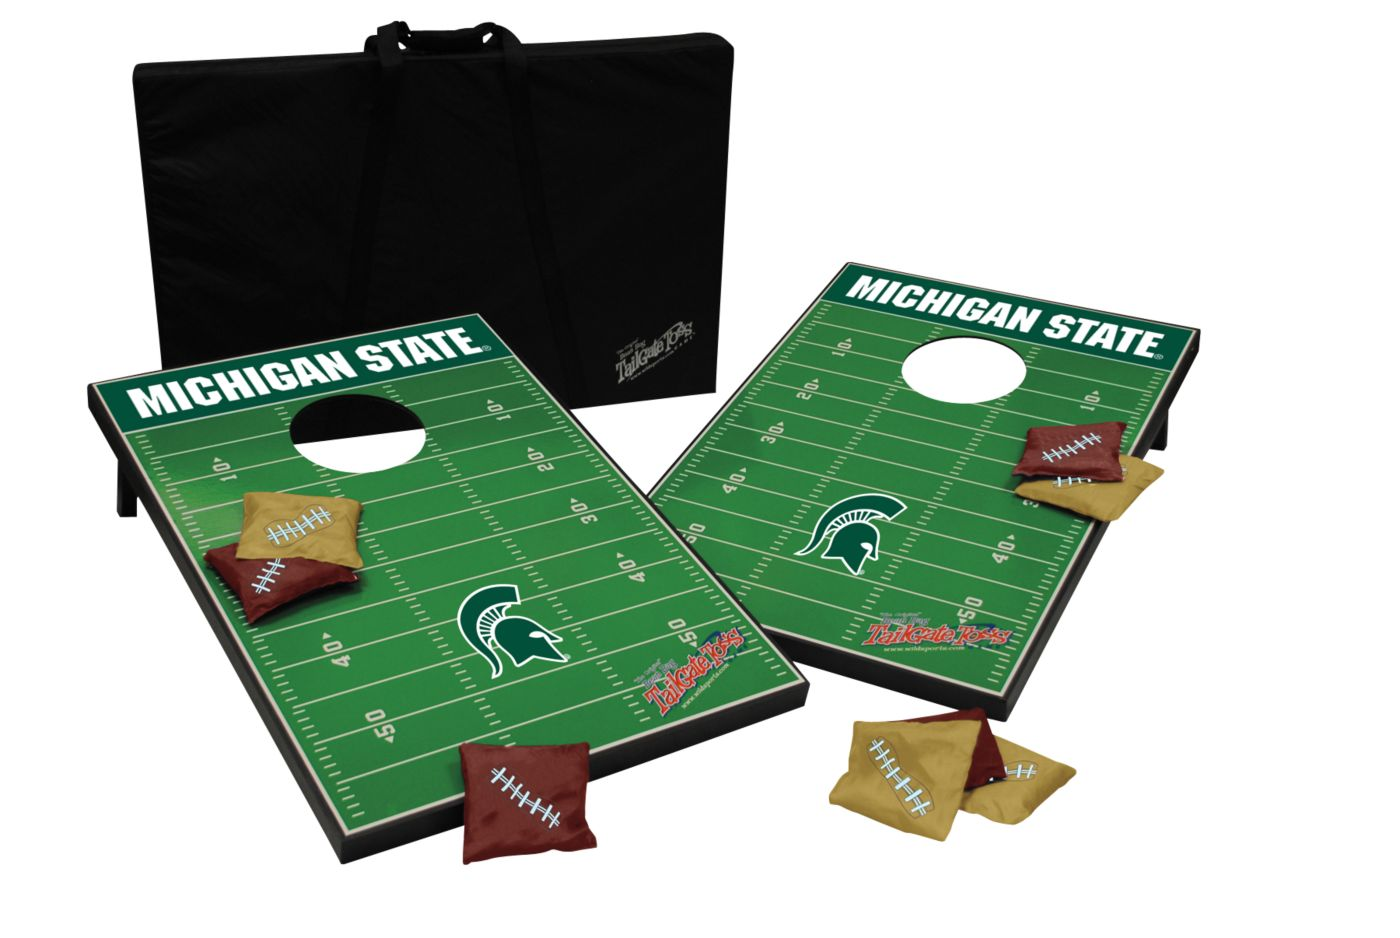 Wild Sports 2' x 3' Michigan State Tailgate Bean Bag Toss